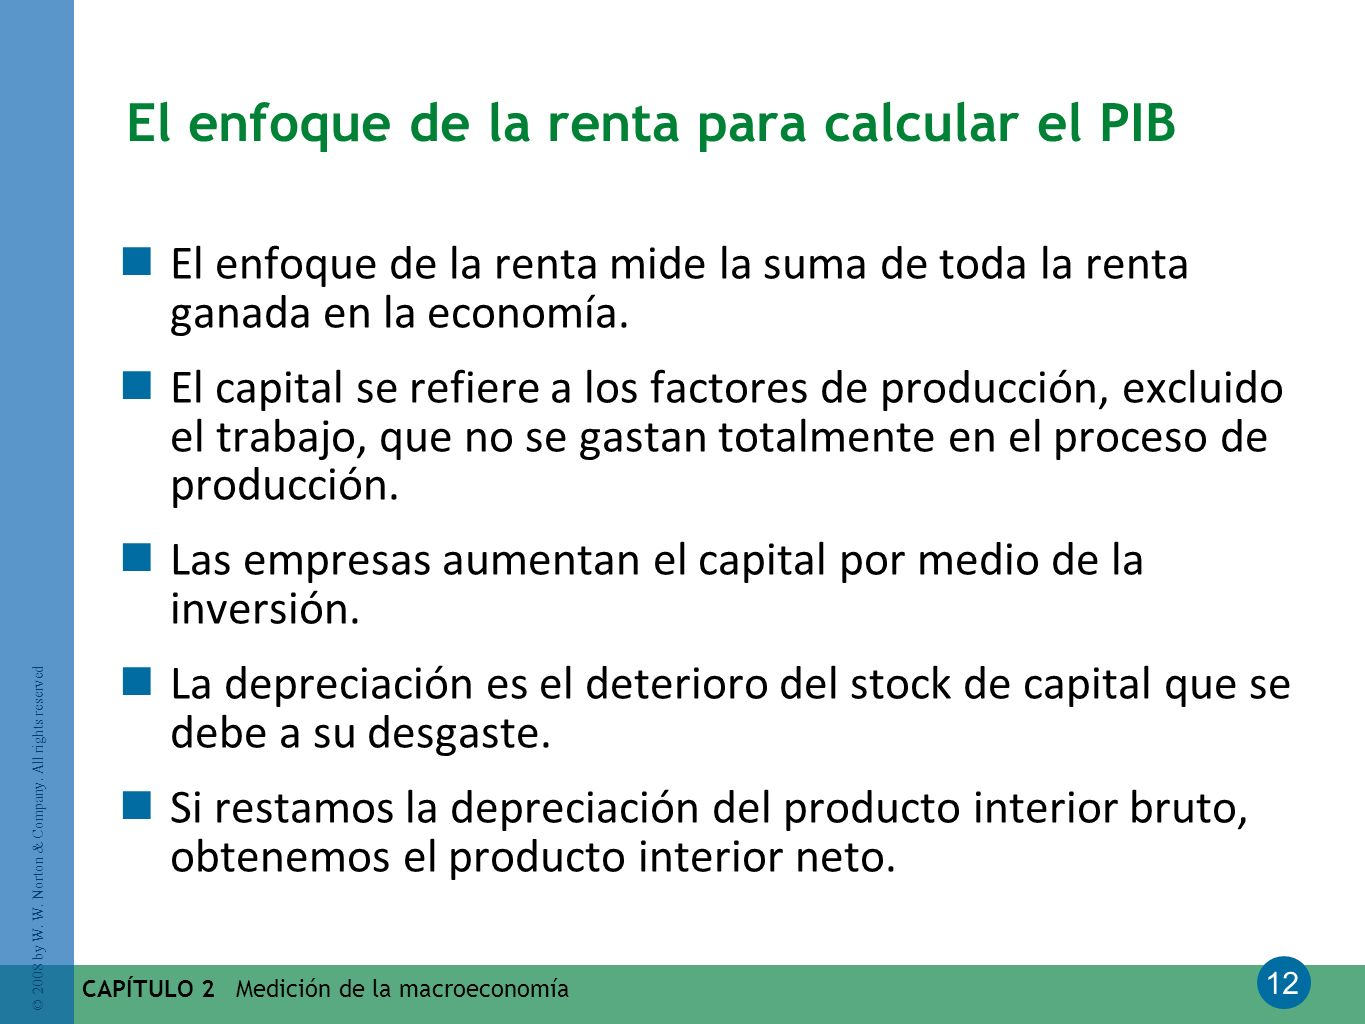 12 © 2008 by W. W. Norton & Company. All rights reserved CAPÍTULO 2 Medición de la macroeconomía El enfoque de la renta para calcular el PIB El enfoqu